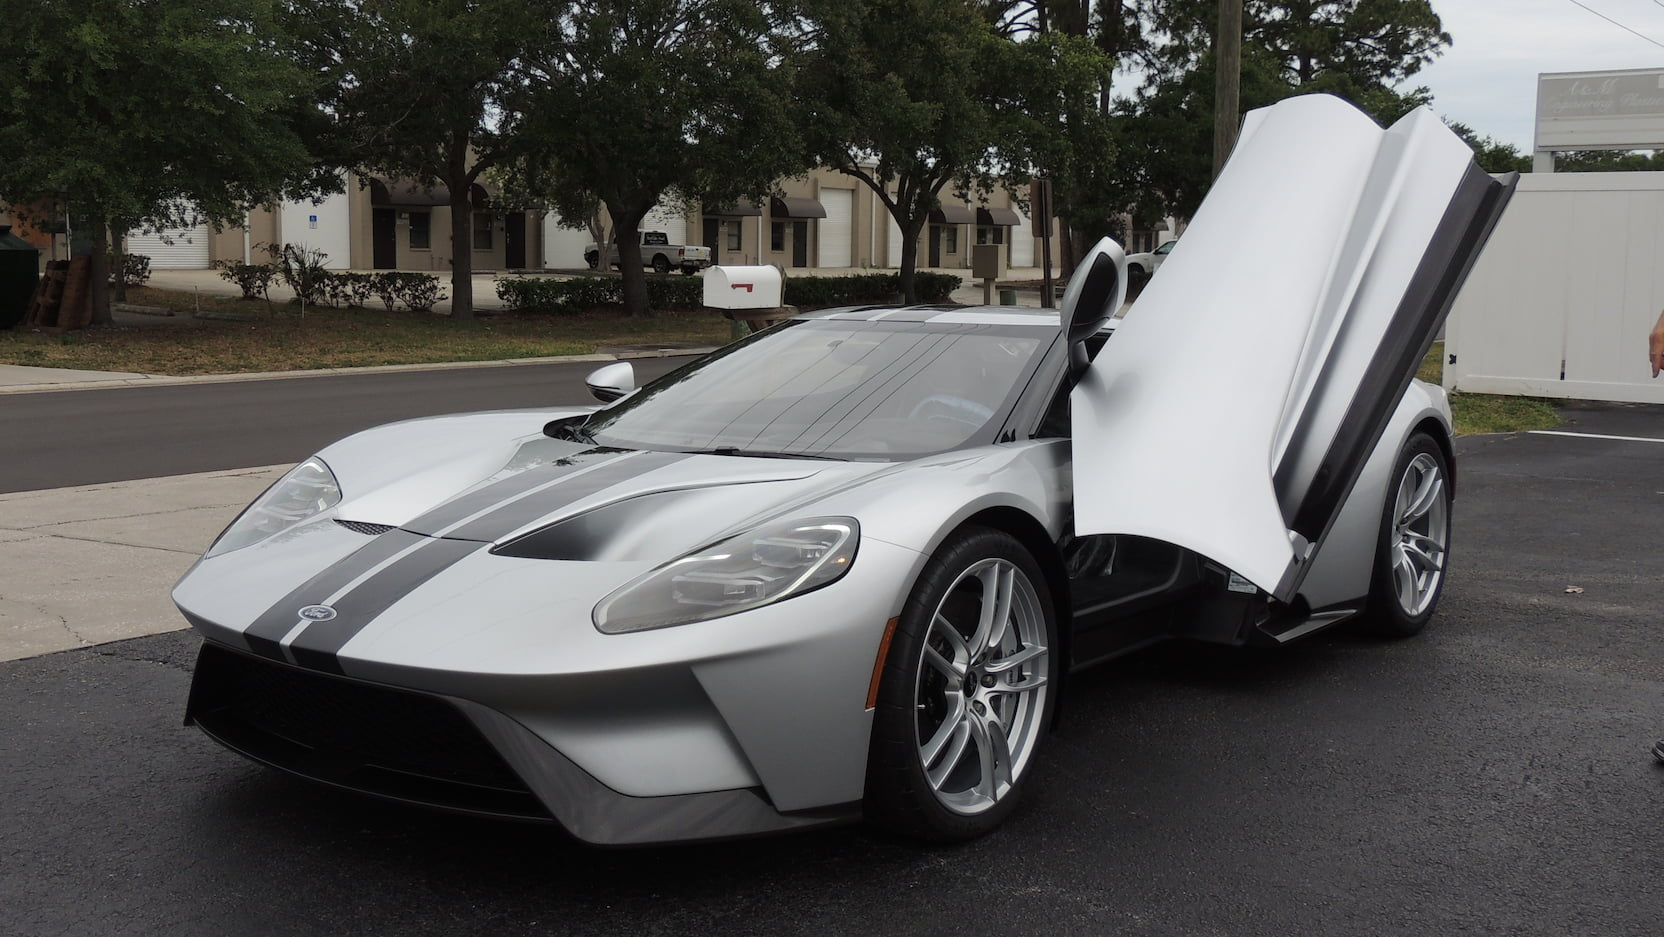 2017 Ford GT front 3/4 with the door up